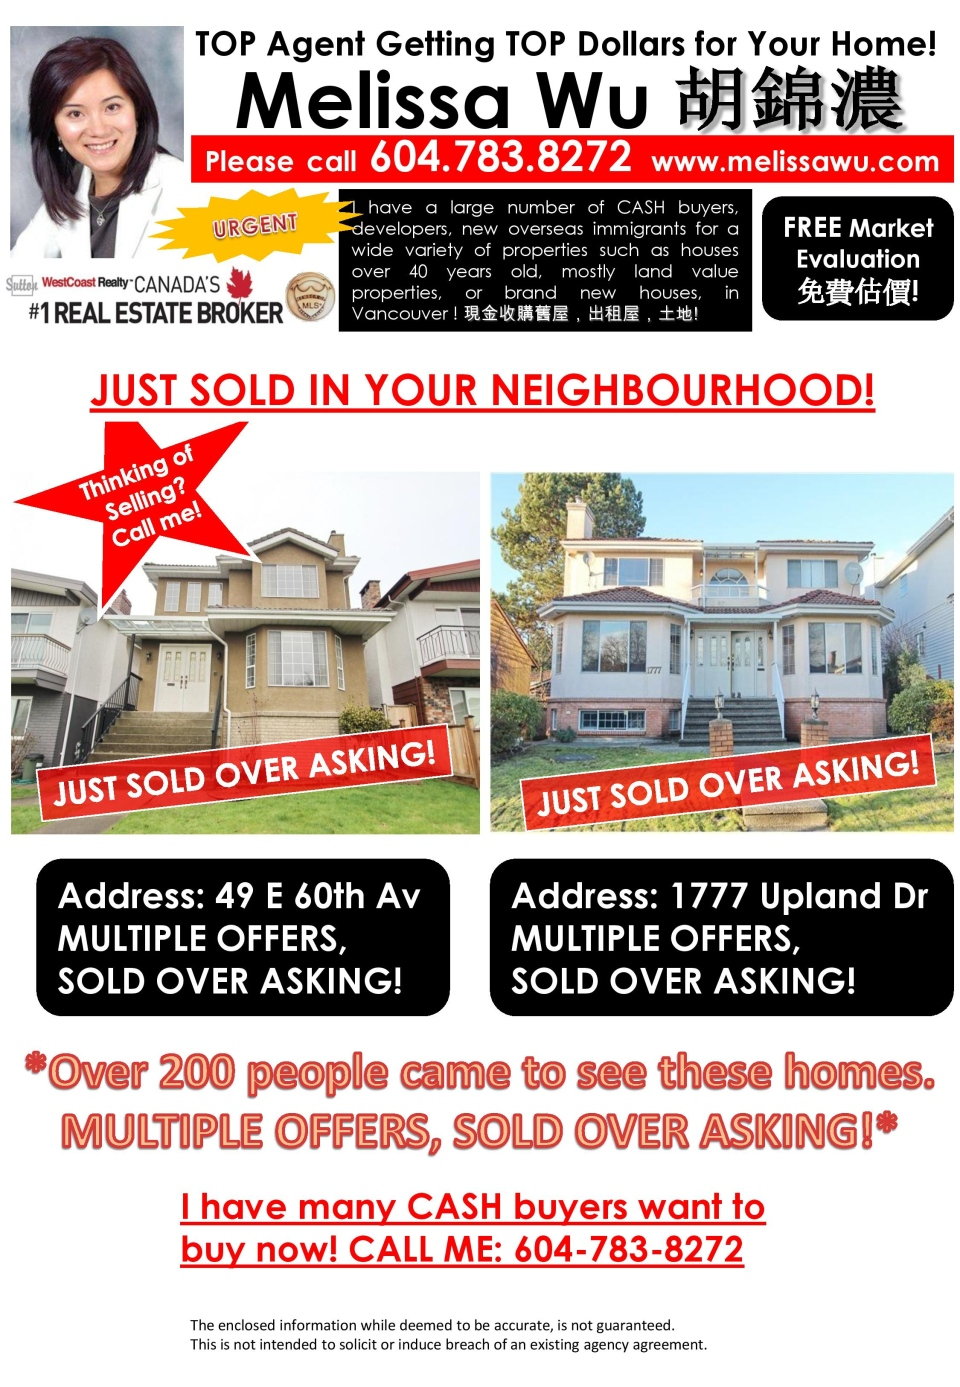 in vancouver real estate the battle is getting the listing flyers